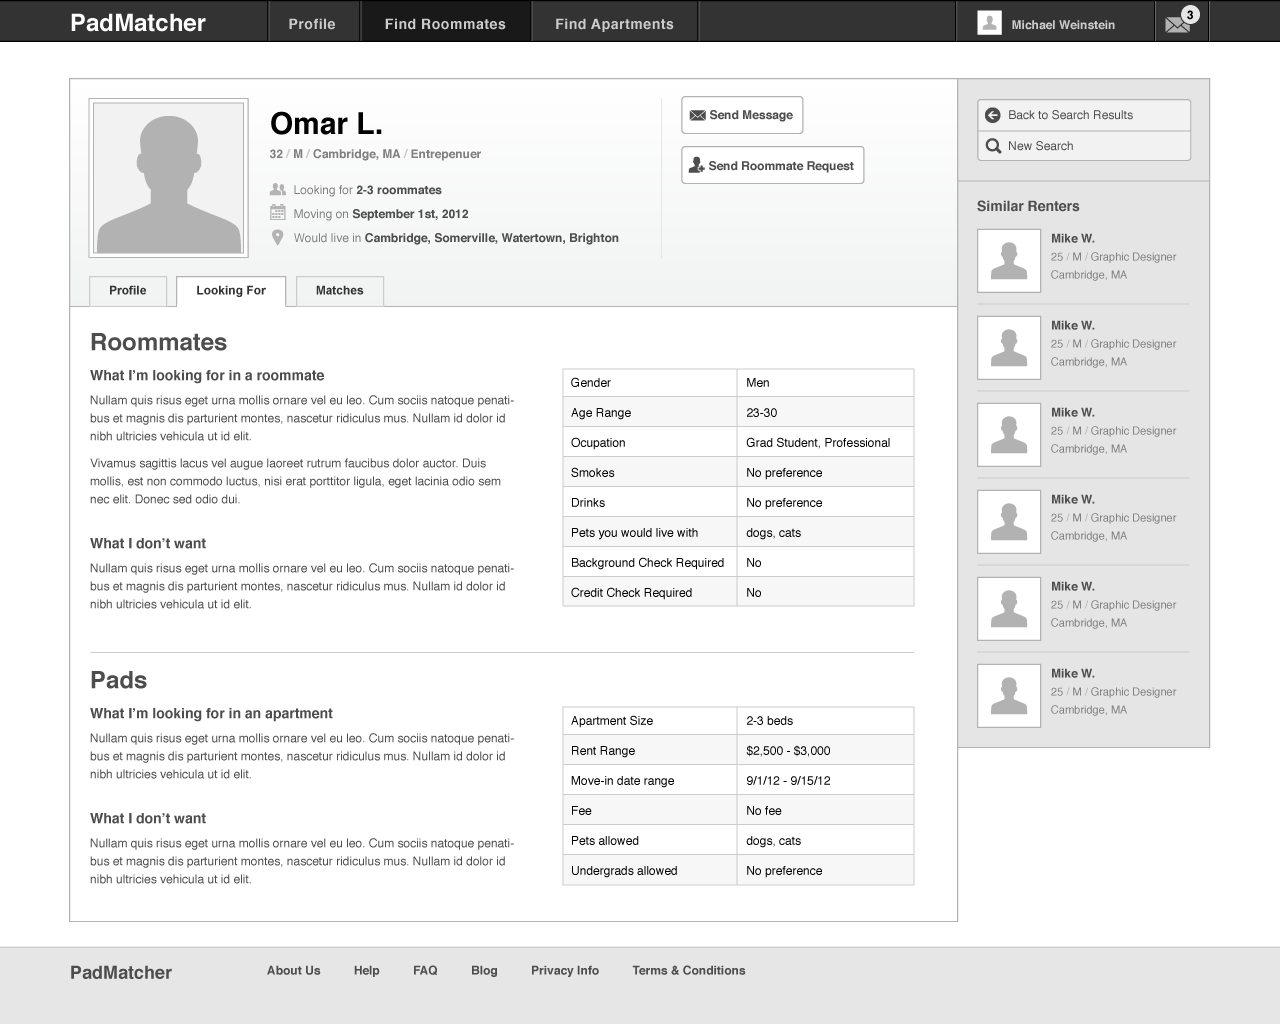 PadMatcher - wireframe - Roommate profile - Details